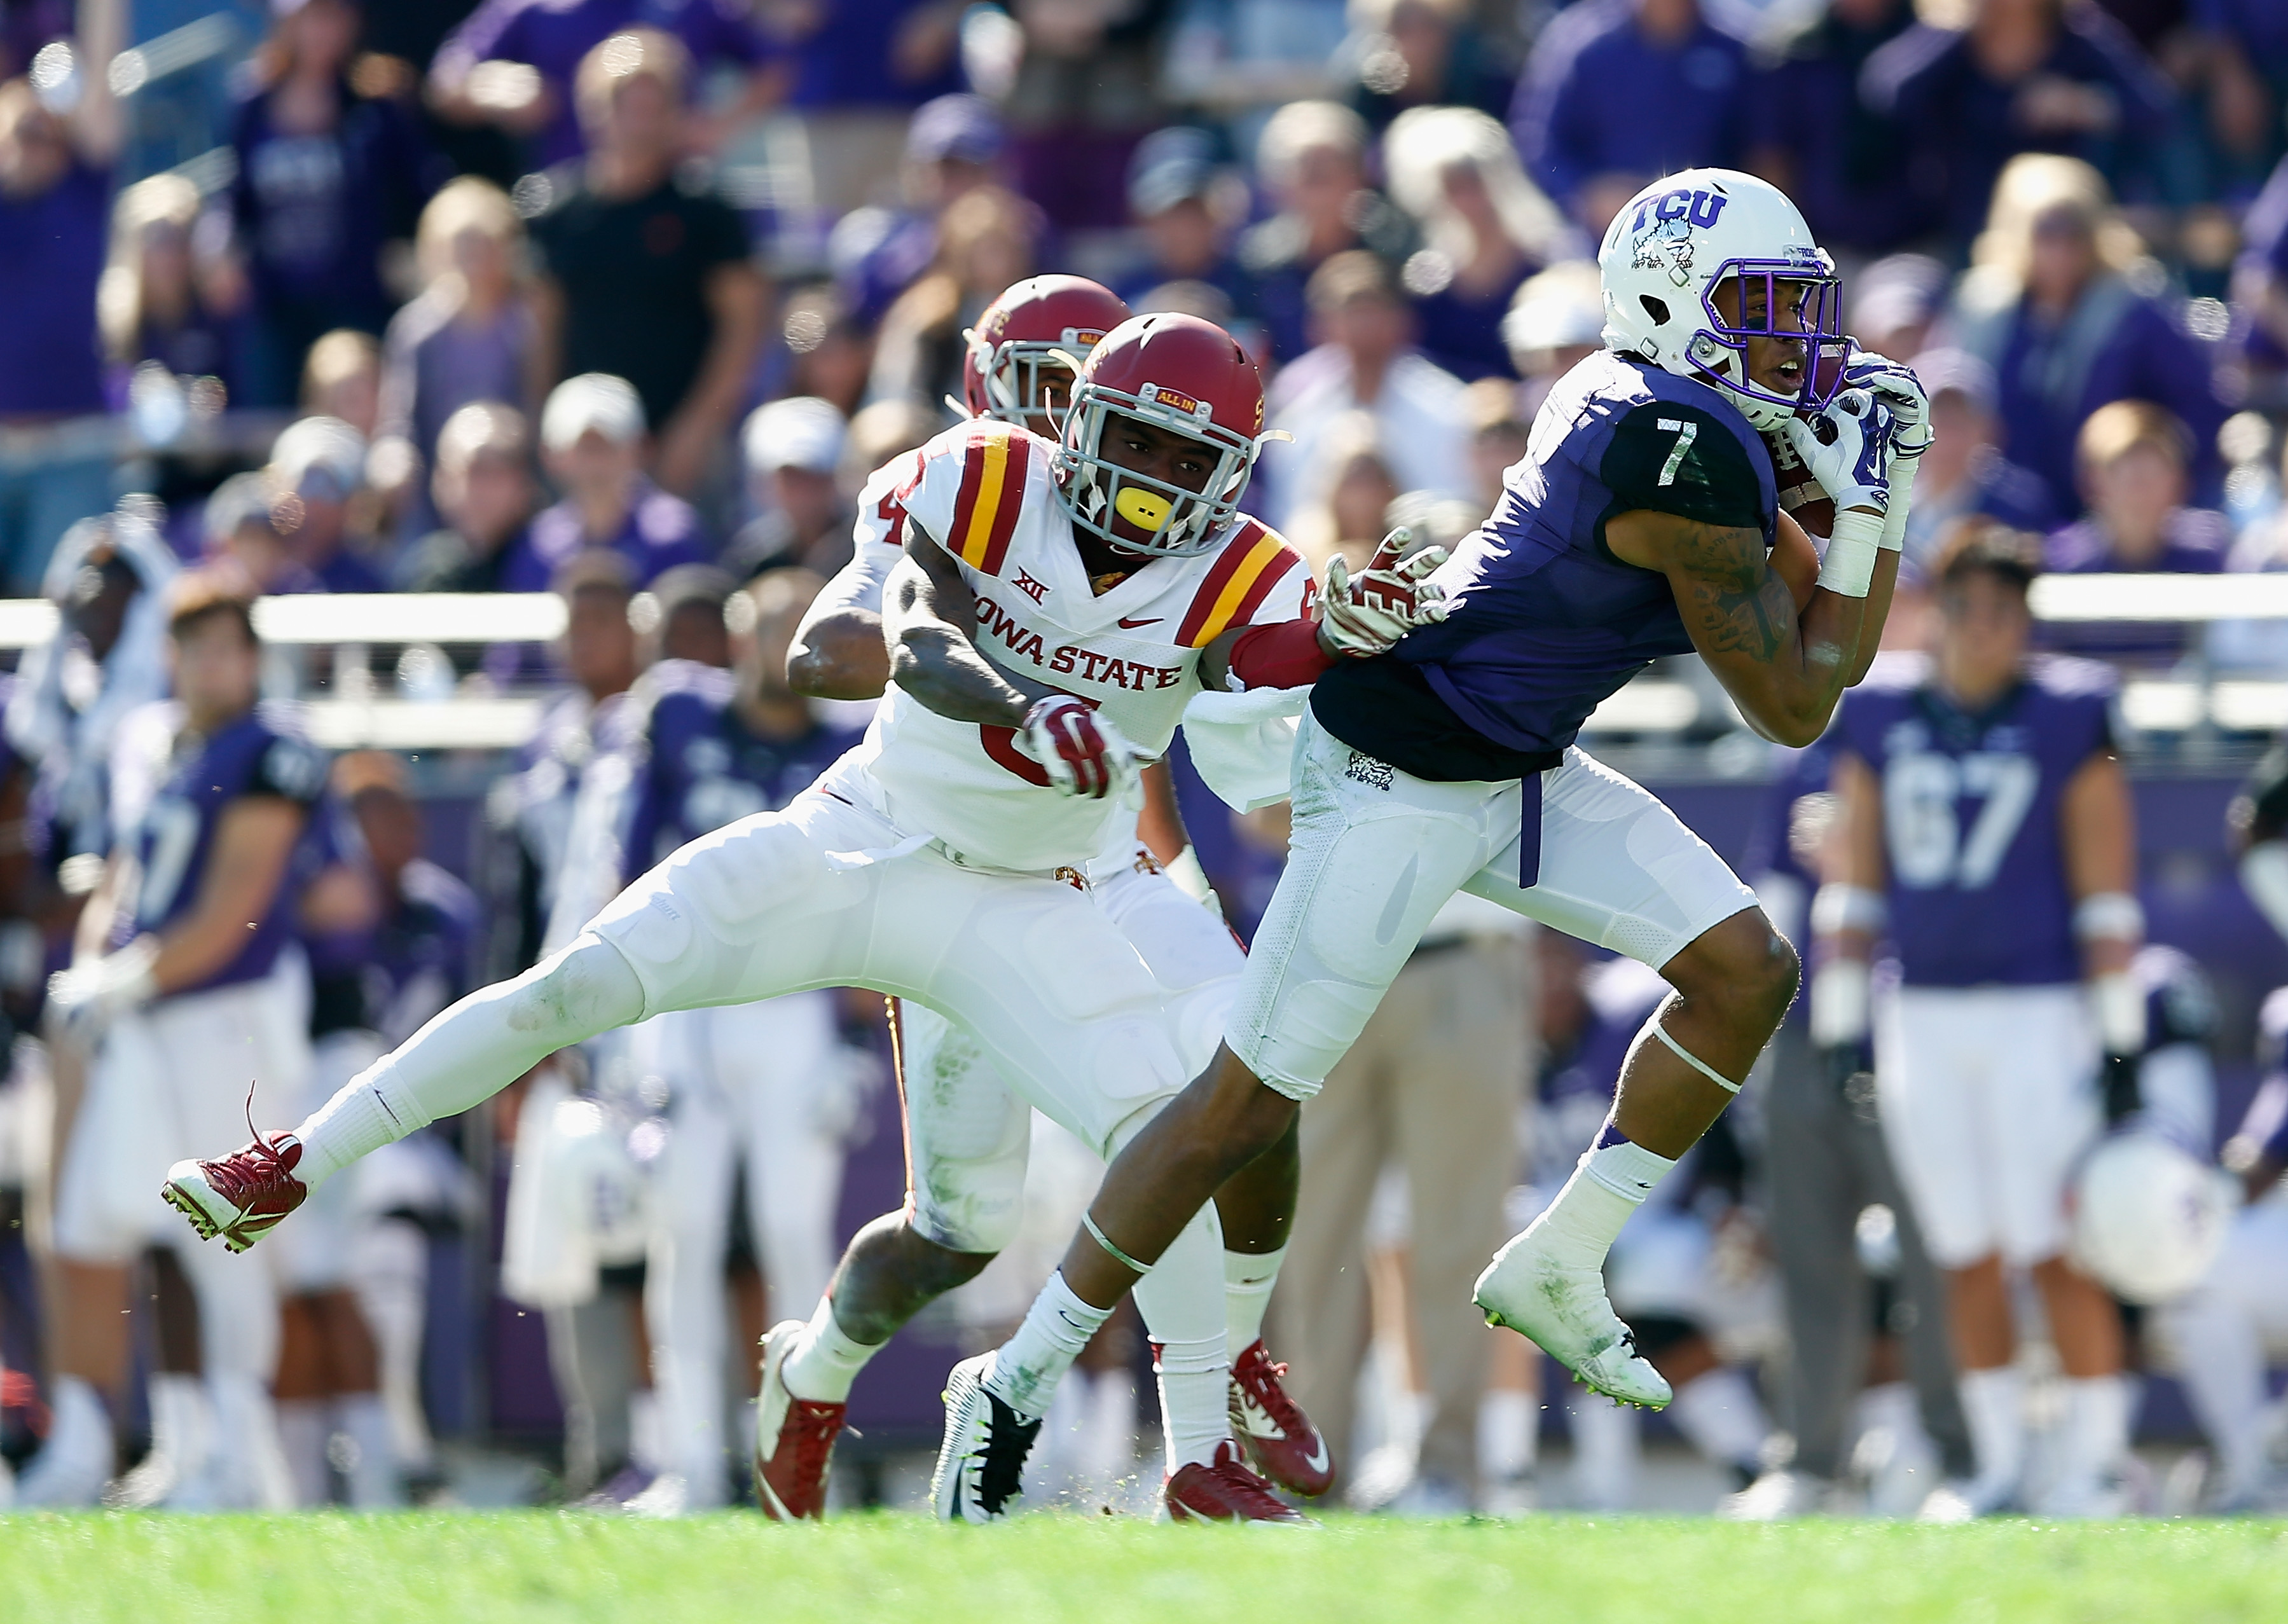 FORT WORTH, TX - DECEMBER 06:  Wide receiver Kolby Listenbee #7 of the TCU Horned Frogs catches a 49 yard reception past defensive back Kamari Cotton-Moya #5 of the Iowa State Cyclones during the second quarter of the Big 12 college football game at Amon G. Carter Stadium on December 6, 2014 in Fort Worth, Texas. The Horned Frongs defeated the Cyclones 55-3.  (Photo by Christian Petersen/Getty Images)